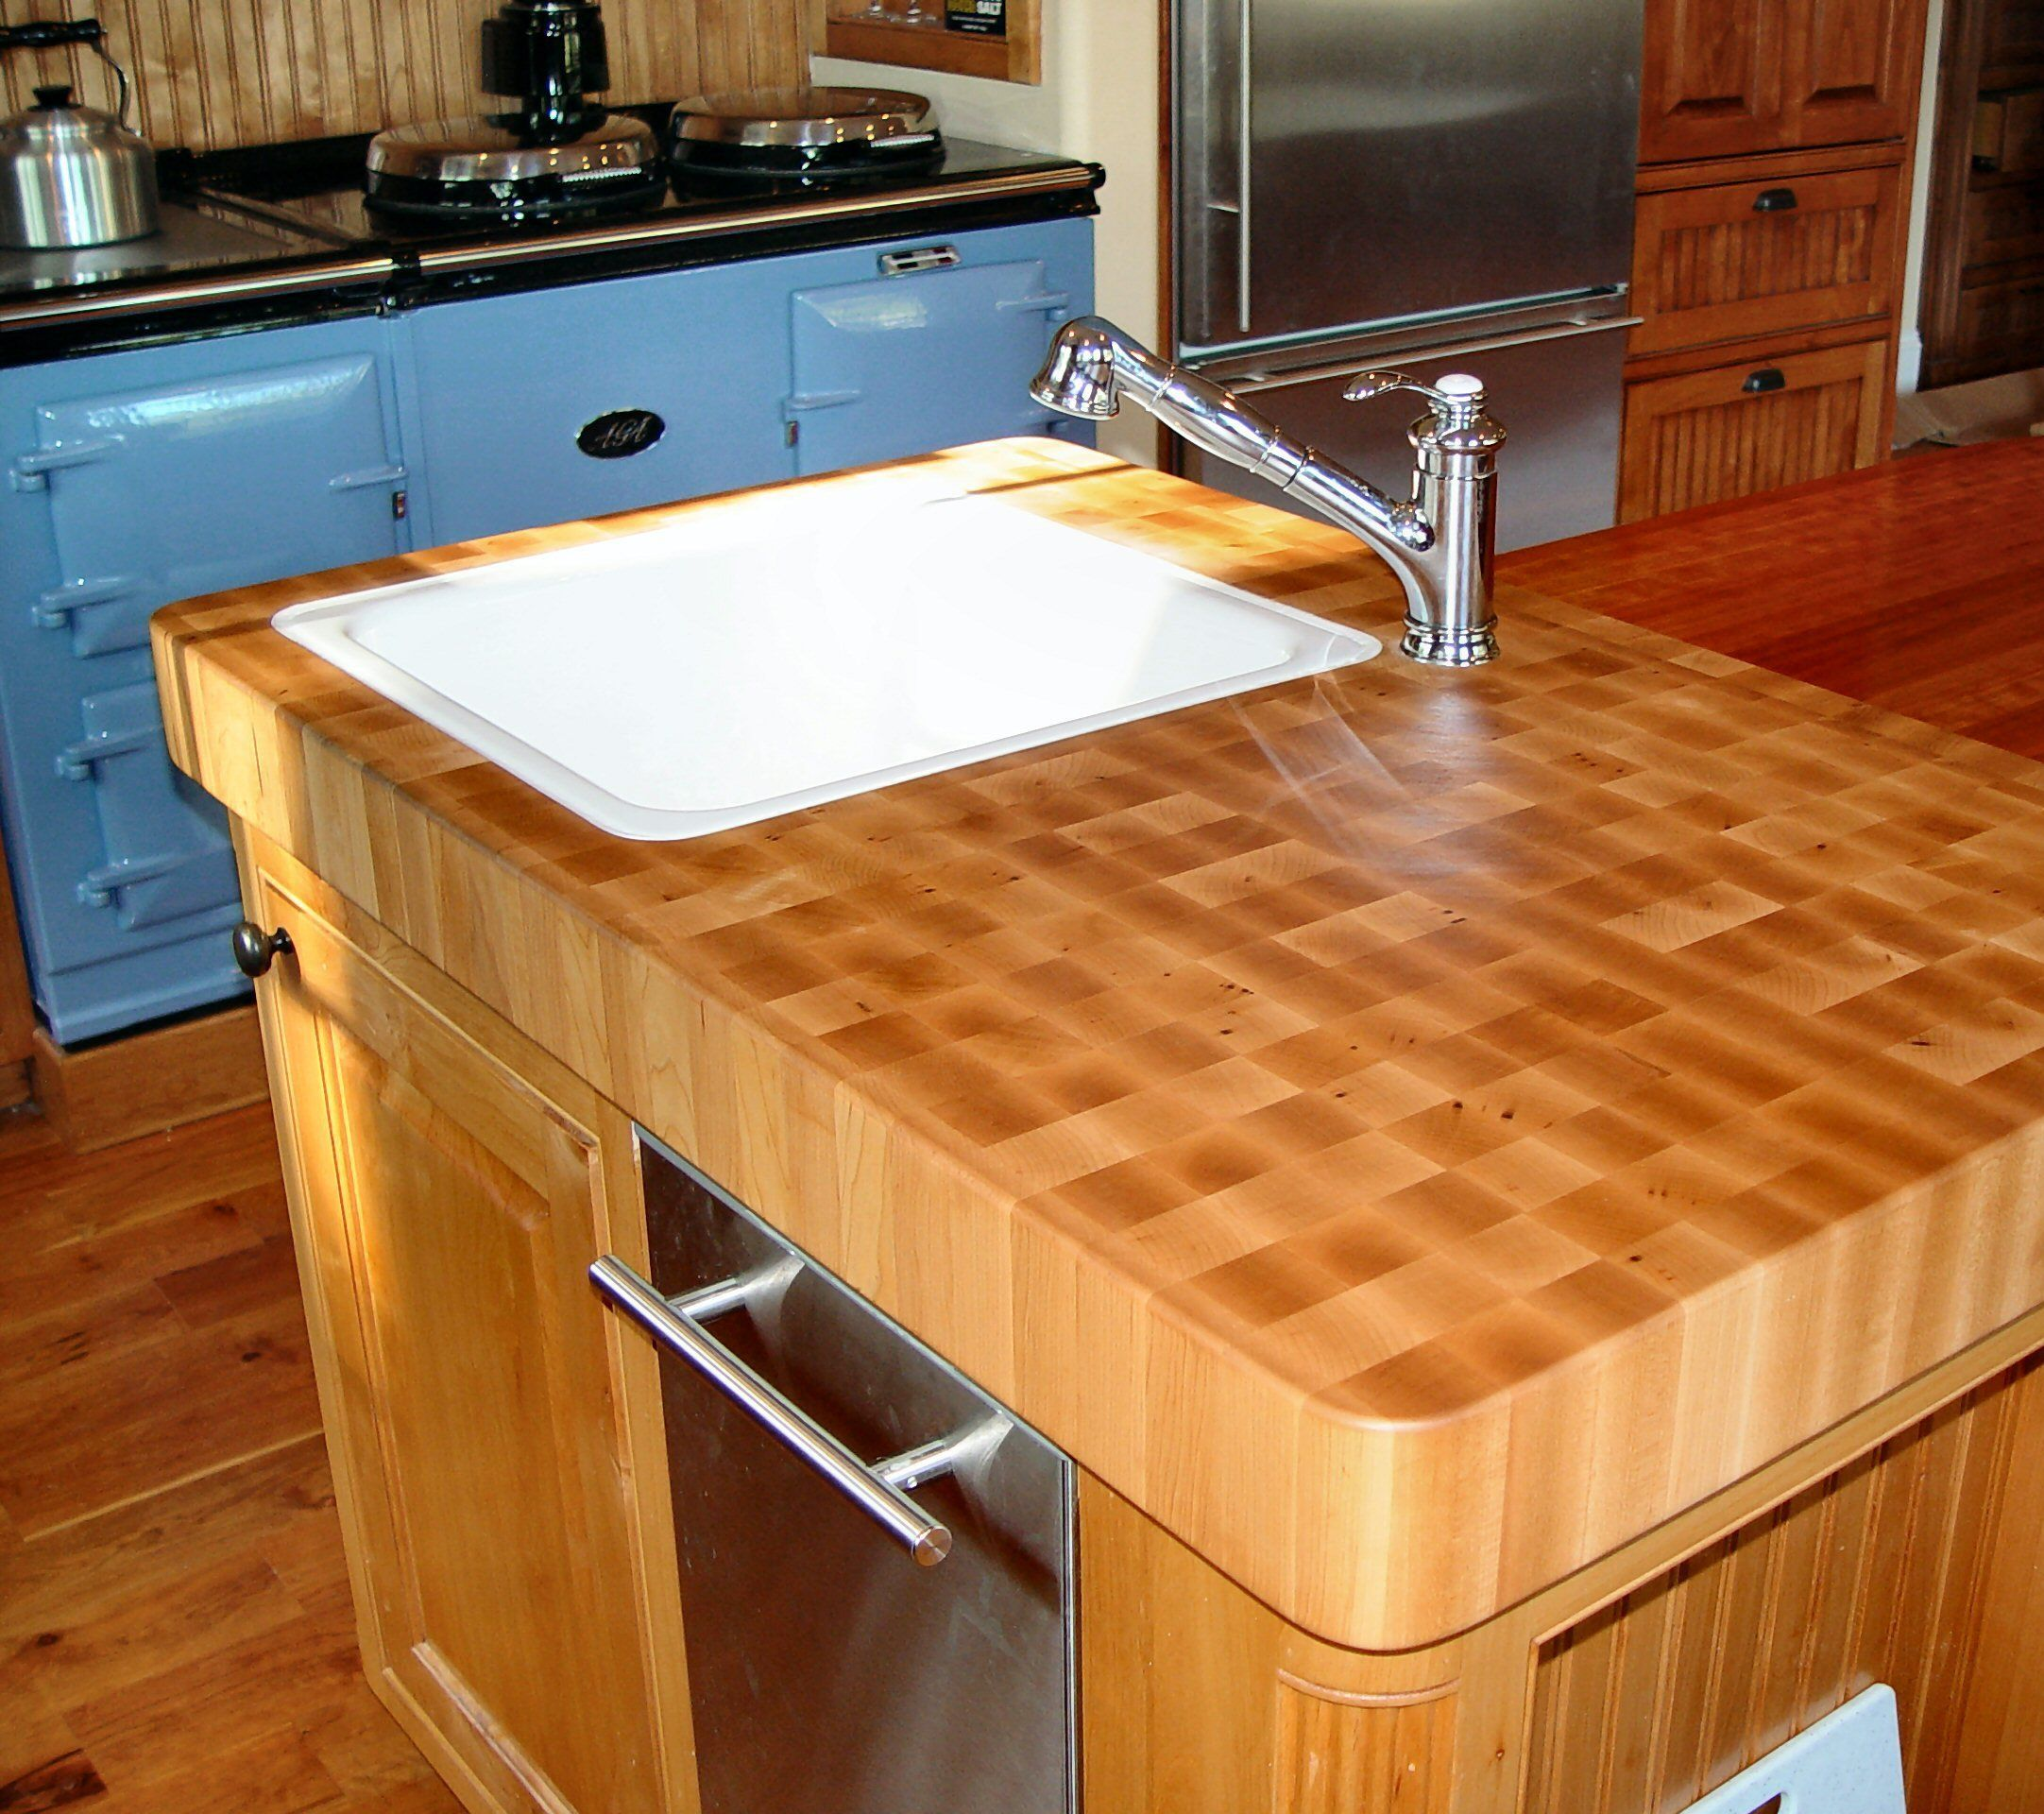 Maple Kitchen Countertops: Hard Maple Wood Countertop Photo Gallery, By DeVos Custom